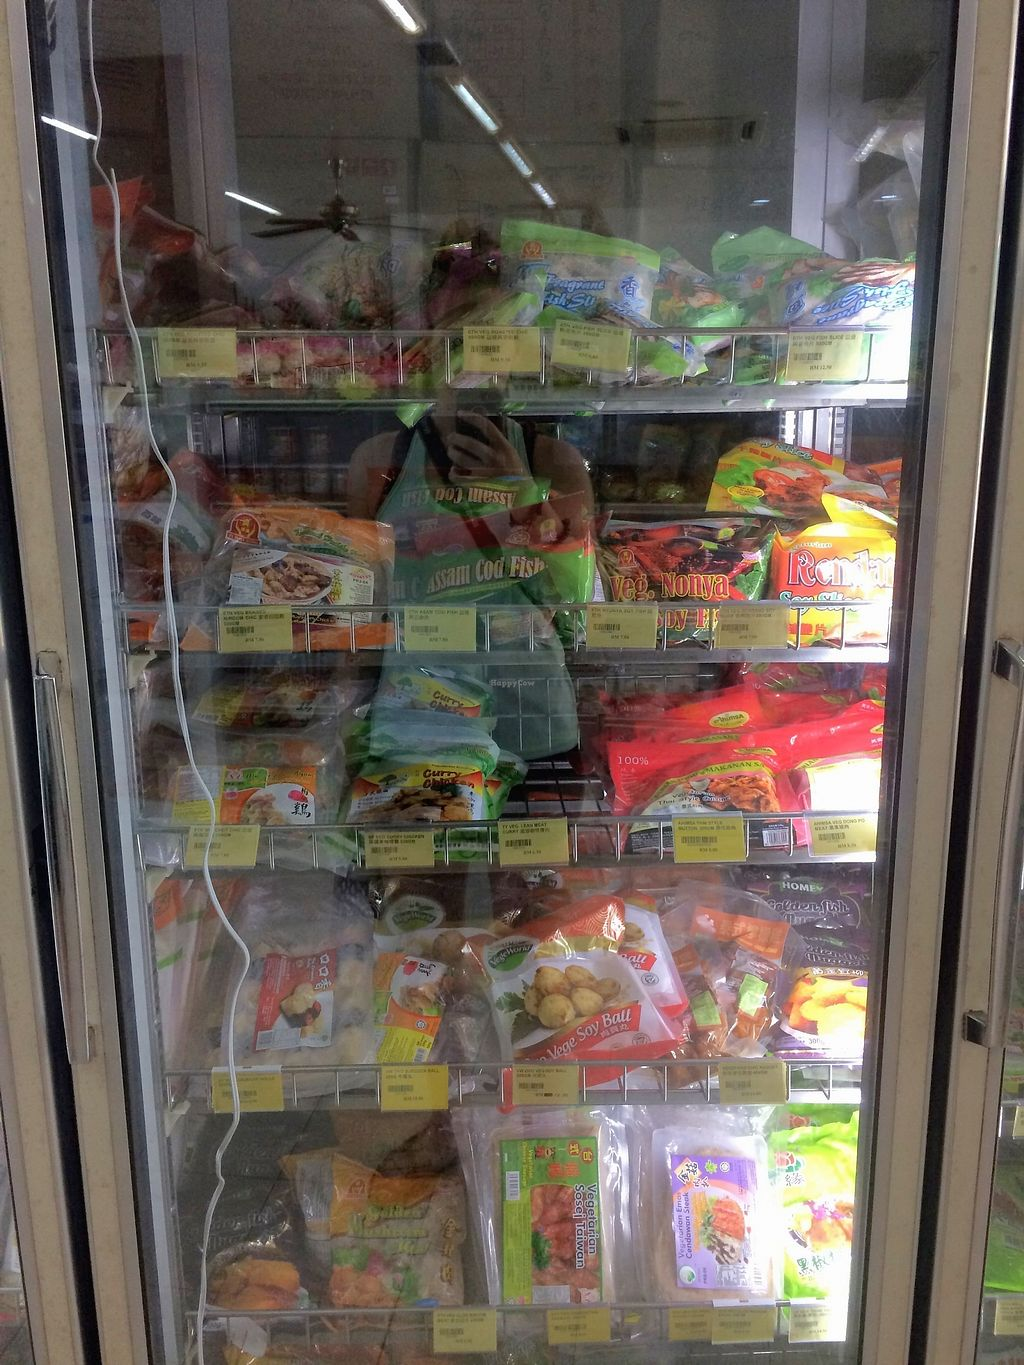 """Photo of G-Teik Vegetarian Supply  by <a href=""""/members/profile/LaurenceMontreuil"""">LaurenceMontreuil</a> <br/>frozen food <br/> March 10, 2018  - <a href='/contact/abuse/image/124/368730'>Report</a>"""